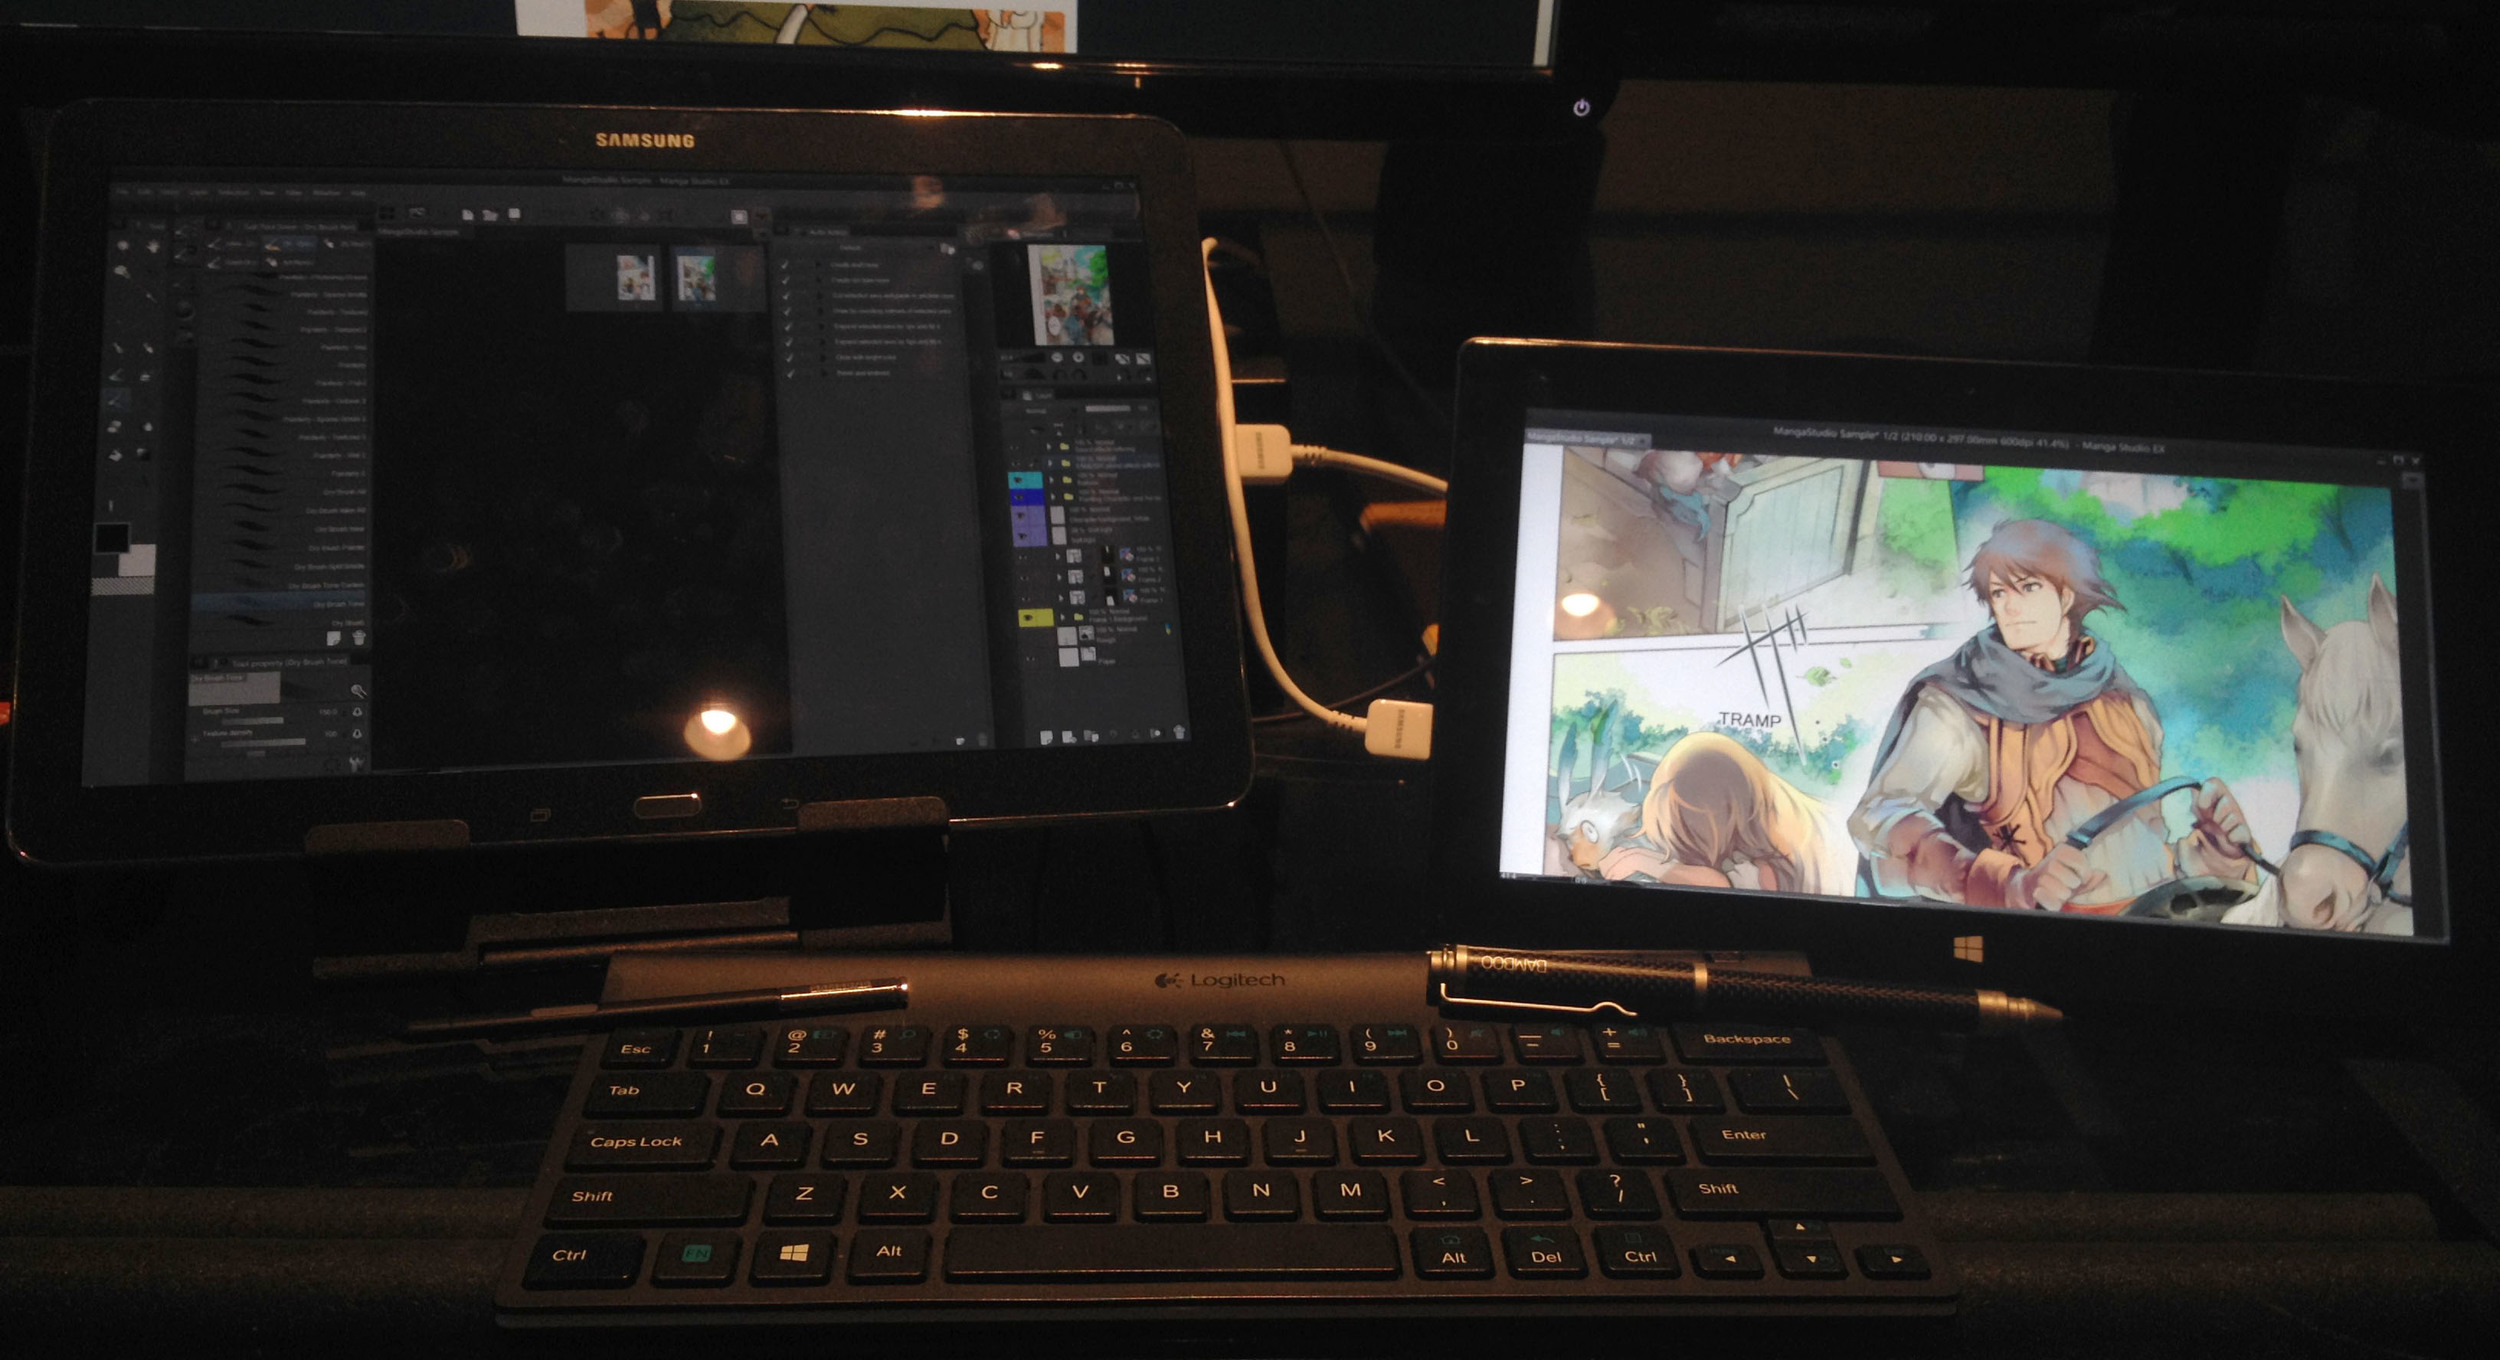 Manga Studio 5.0.4 running on the Surface Pro 2 (right) with the program's UI displayed on the Samsung Galaxy Note Pro 12.2, a bit of technical razzle dazzle made possible by the Android app TwoMonUSB and its desktop server software.